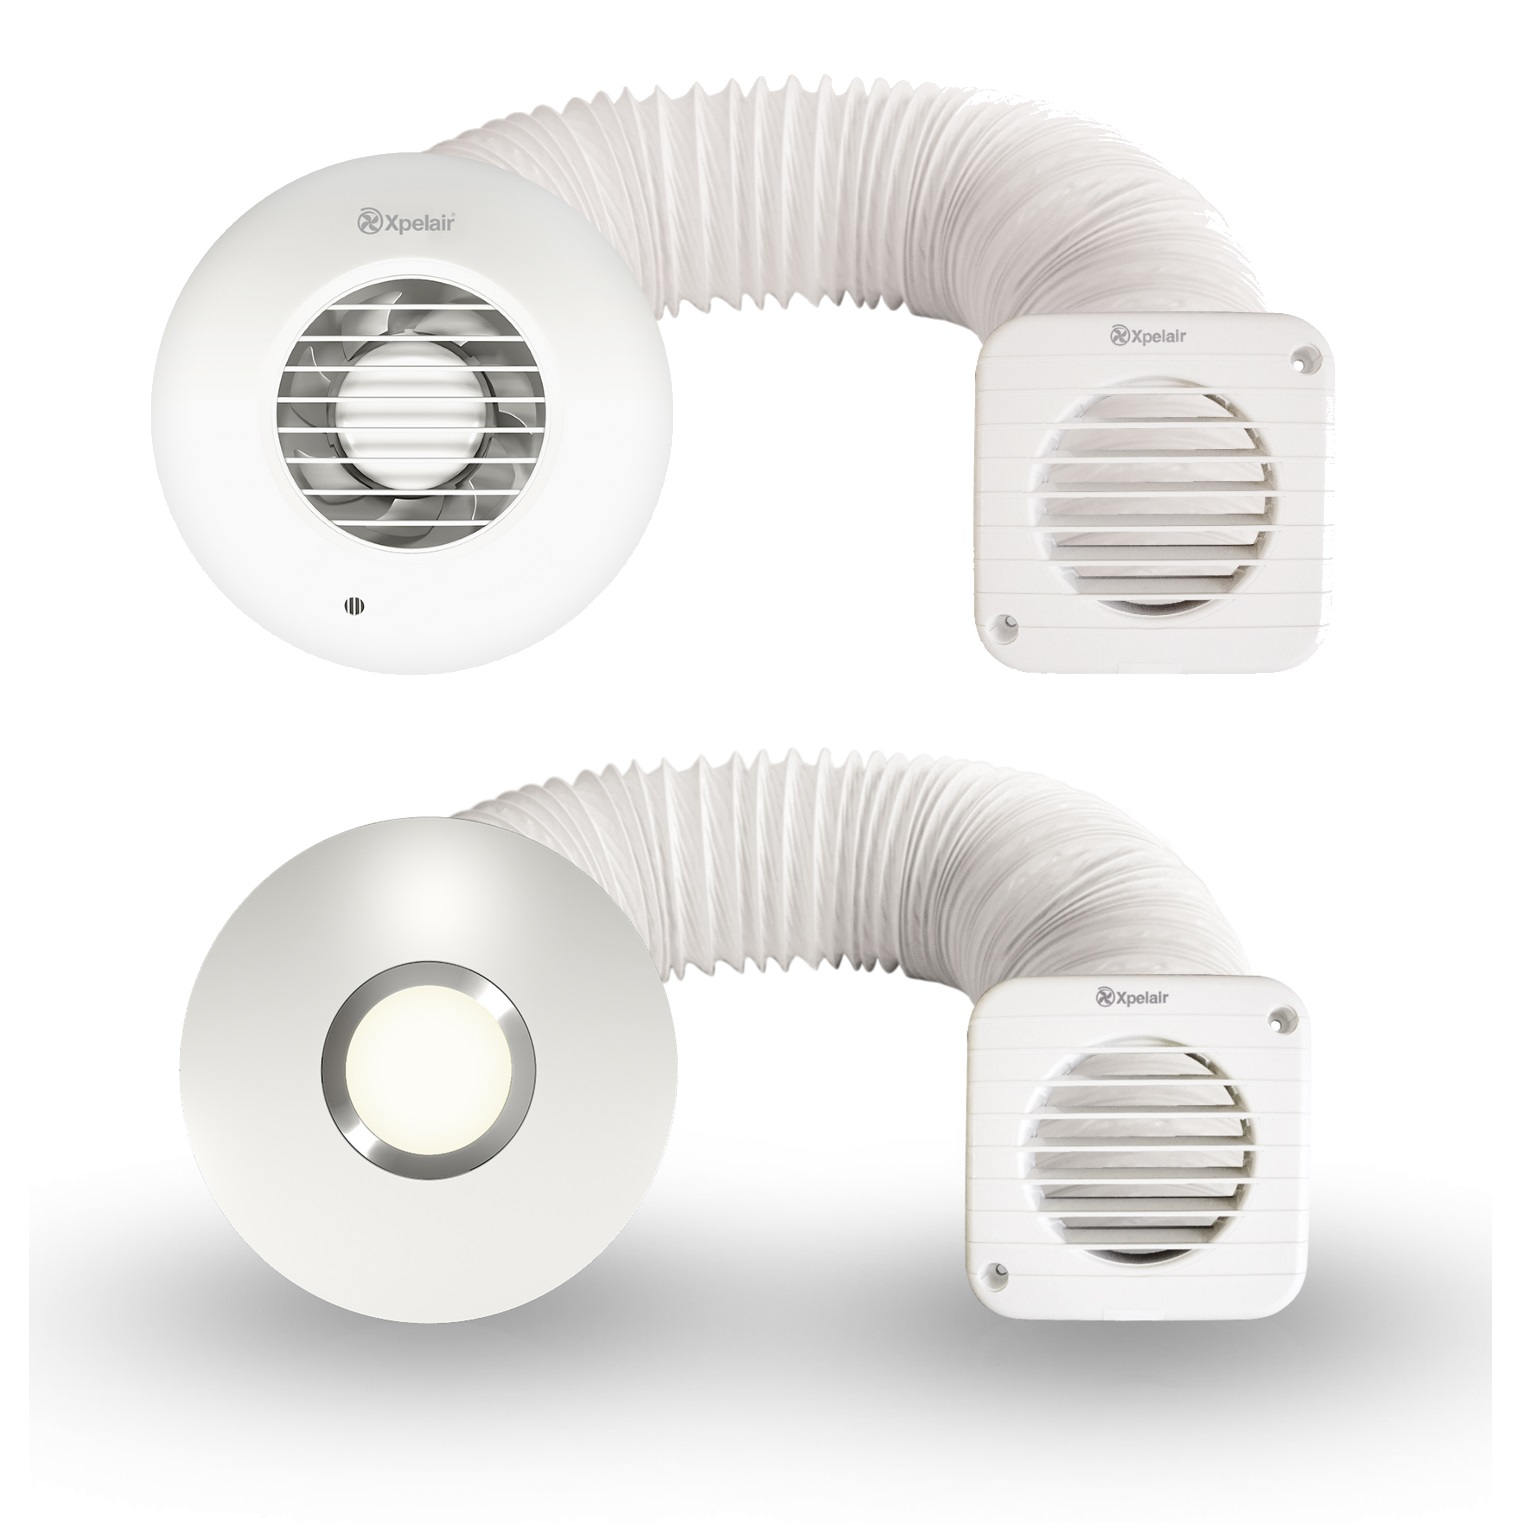 Xpelair Simply Silent Shower Fan Complete Optional Light For Bathroom